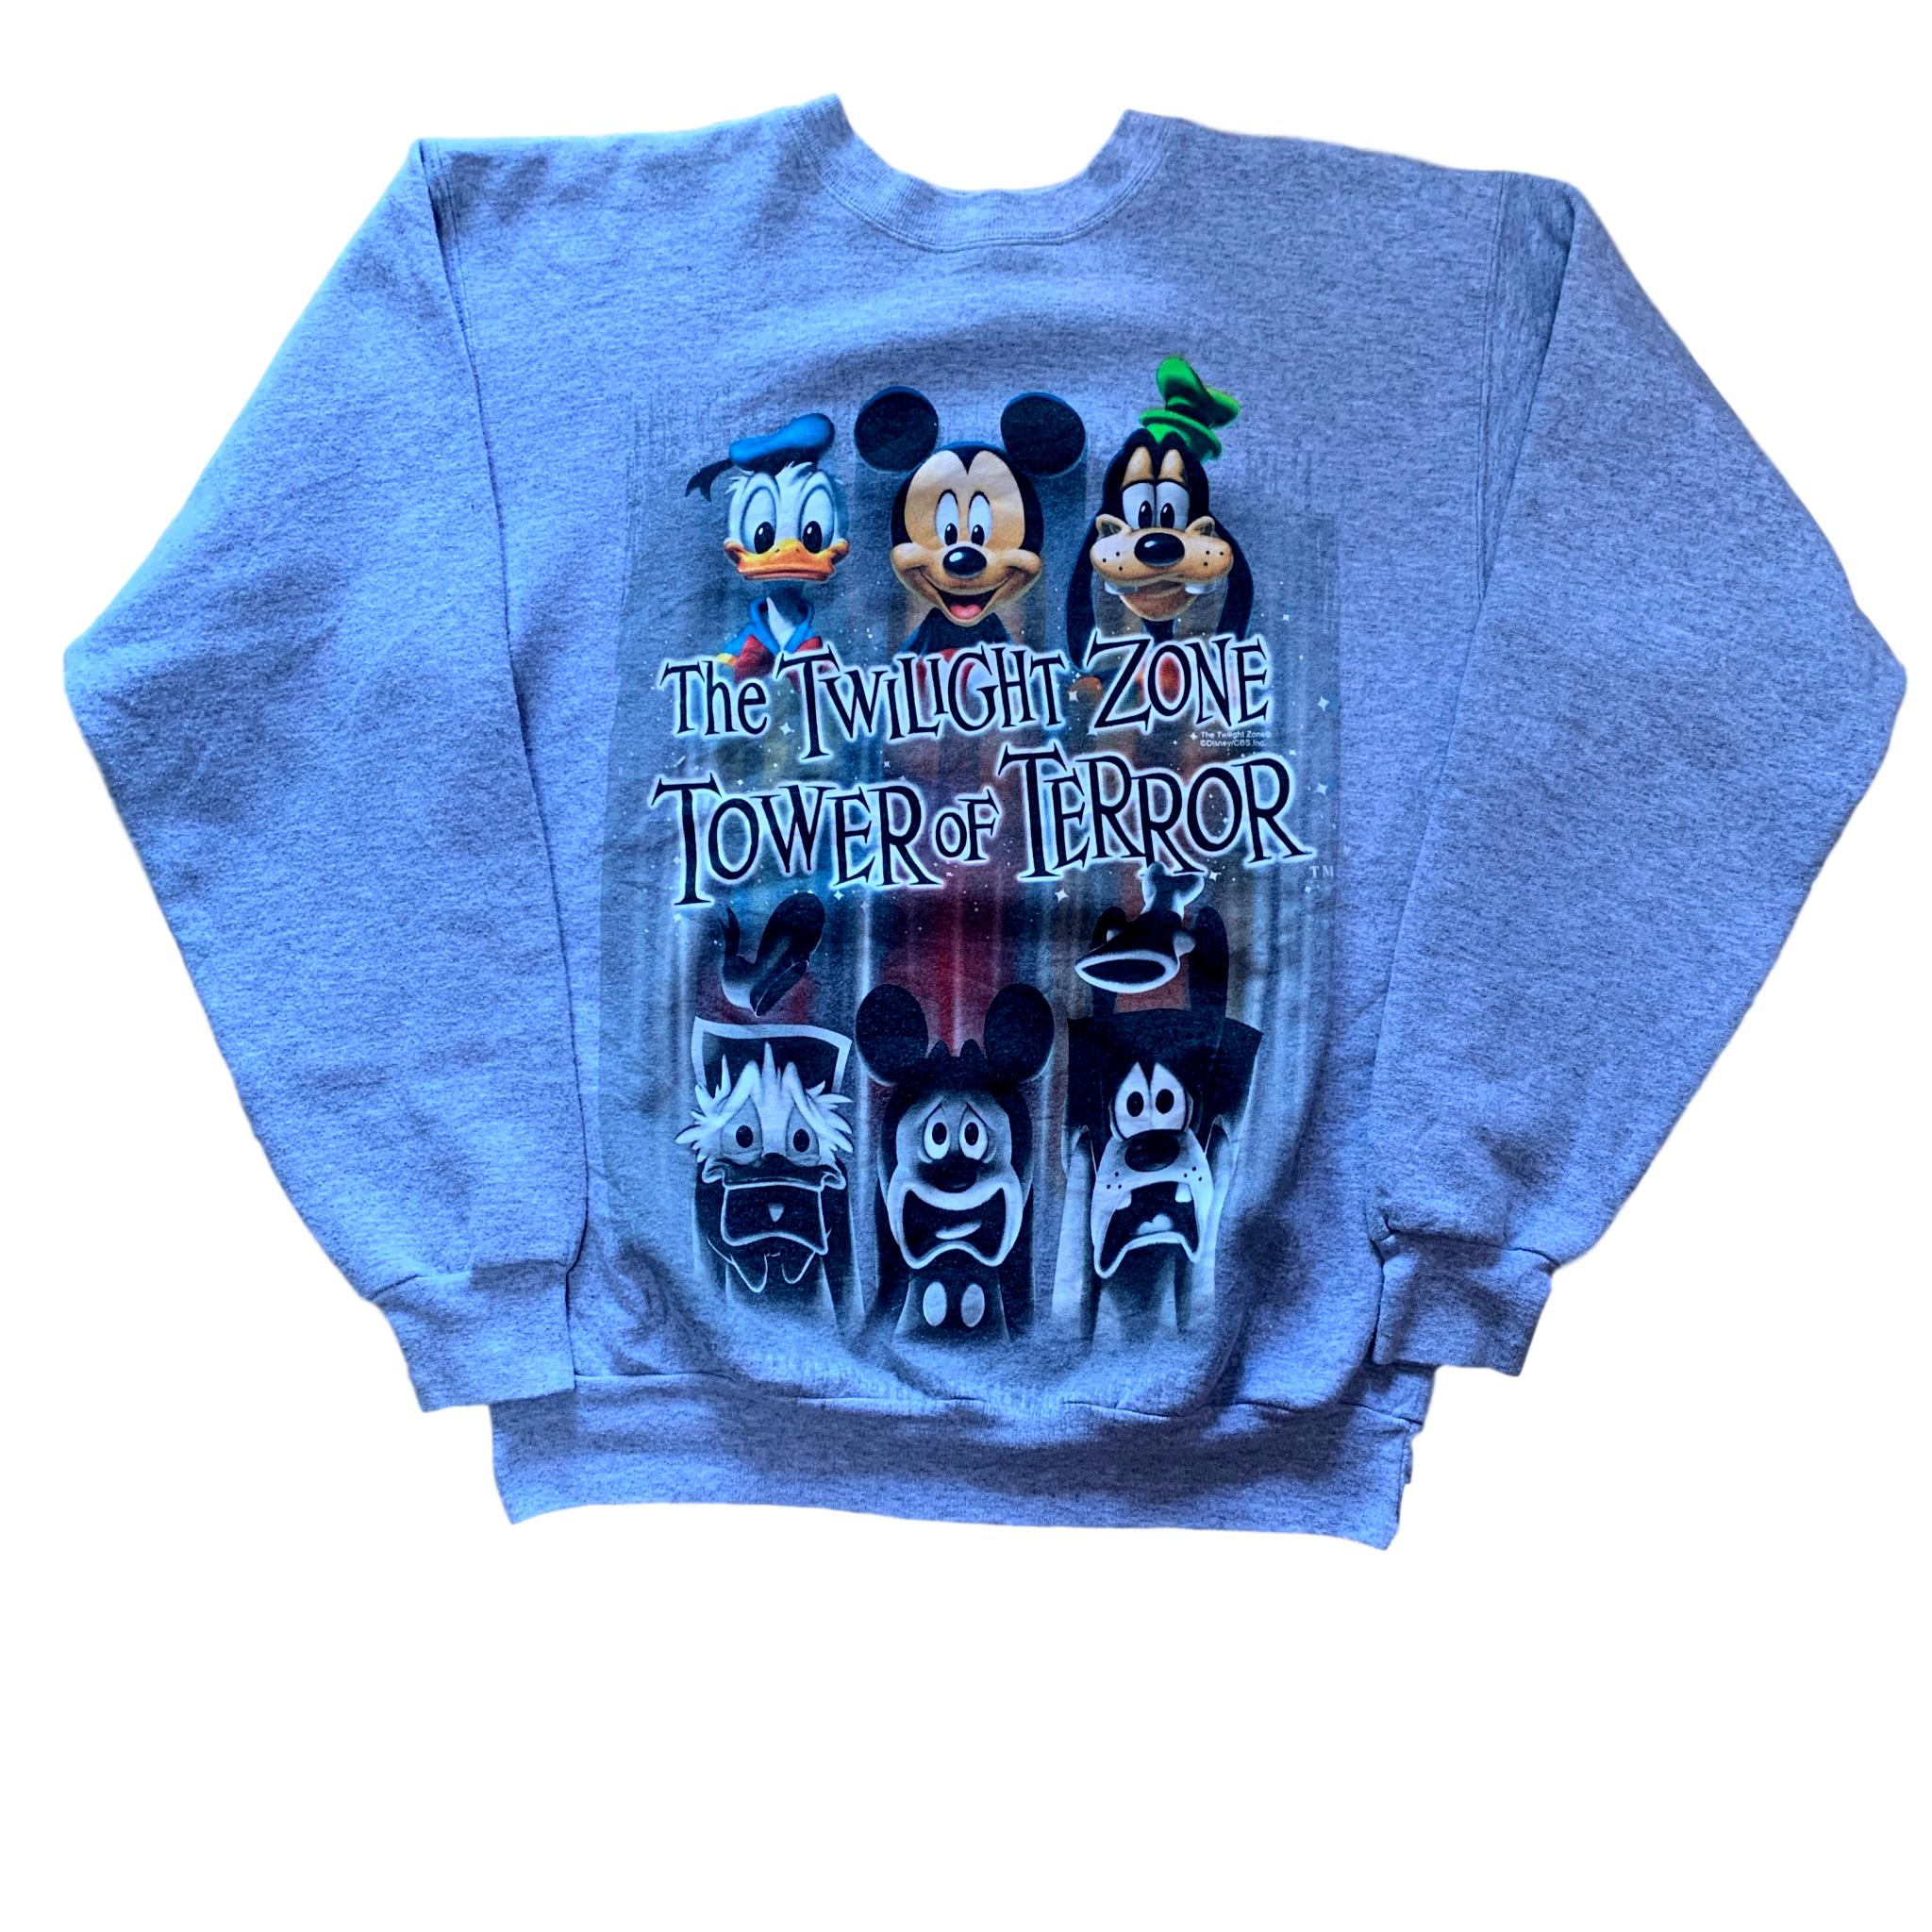 Disney Tower of Terror Sweatshirt (S)